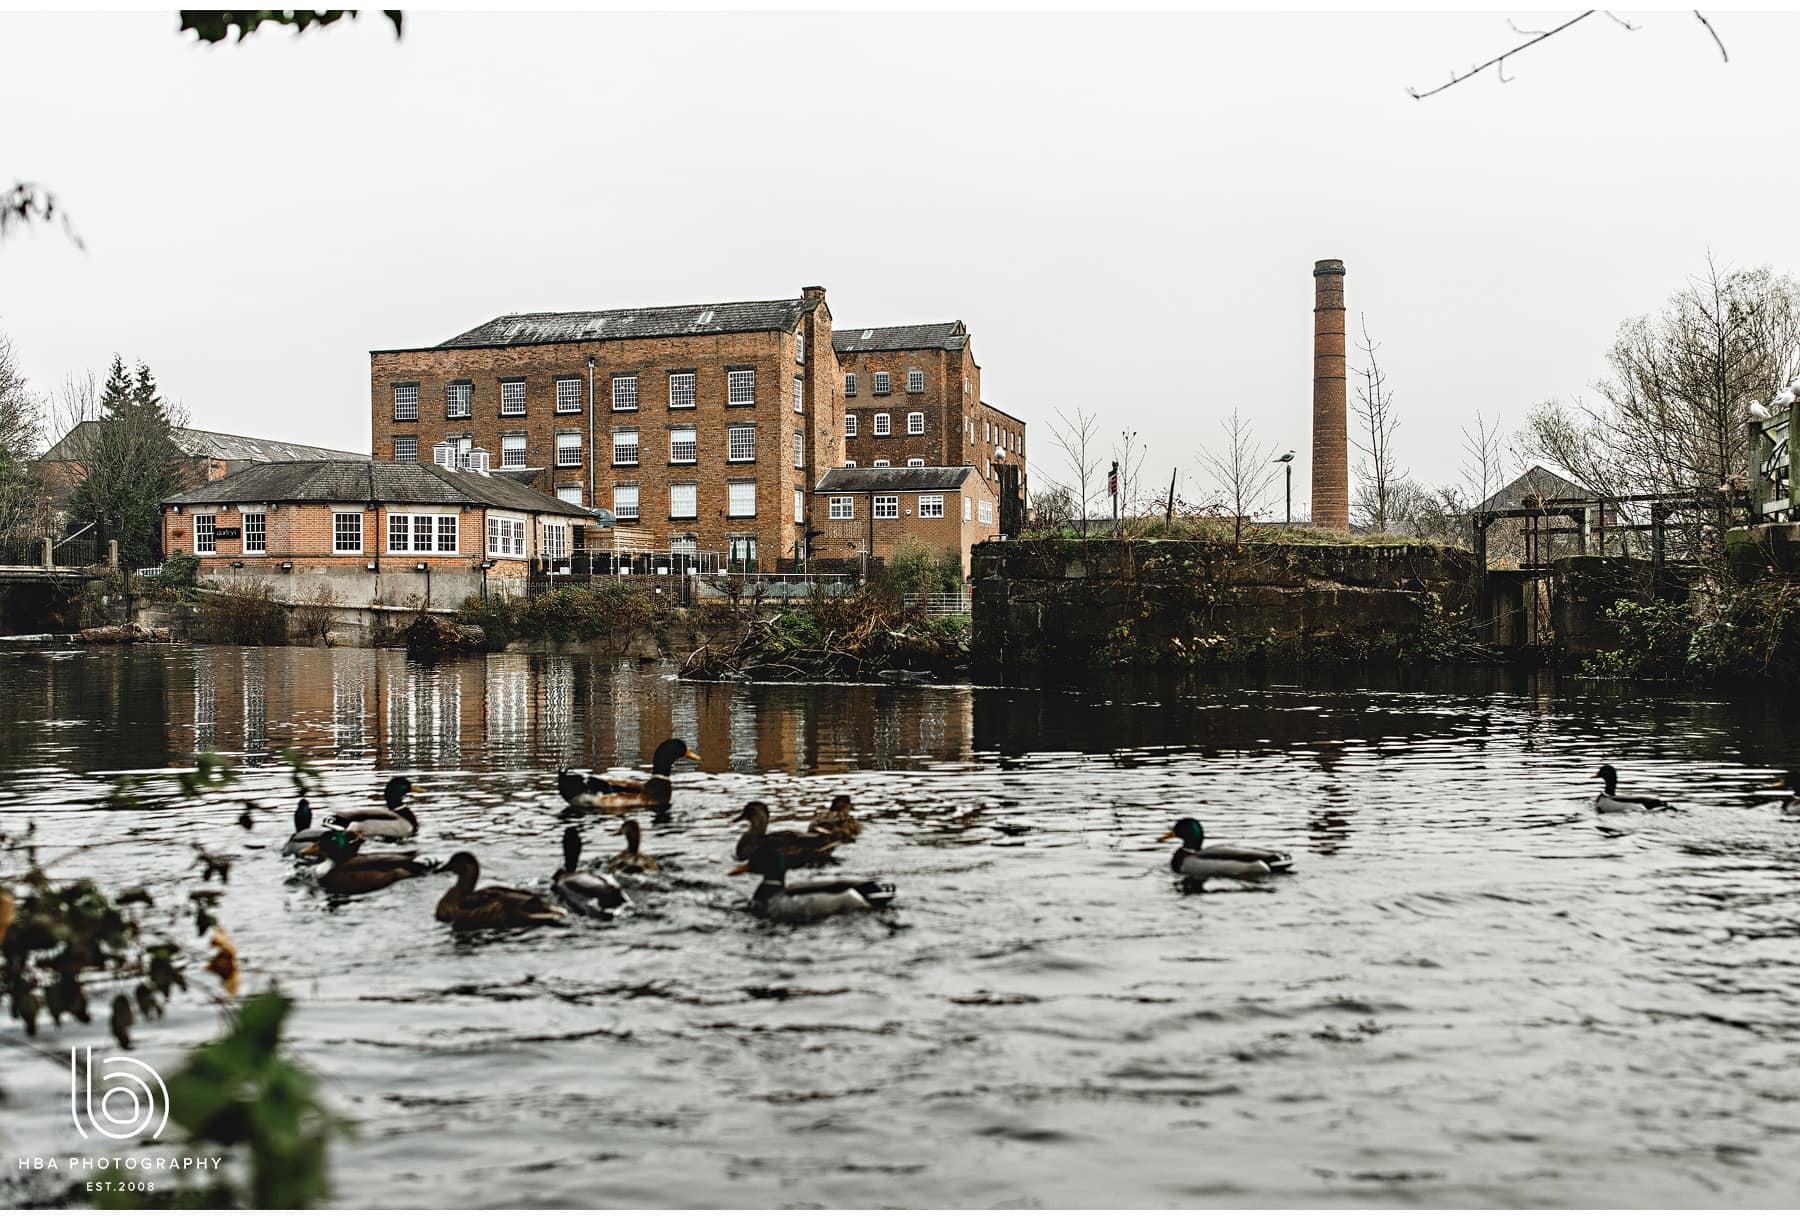 The West Mill from across the water of the derwent river in Derby